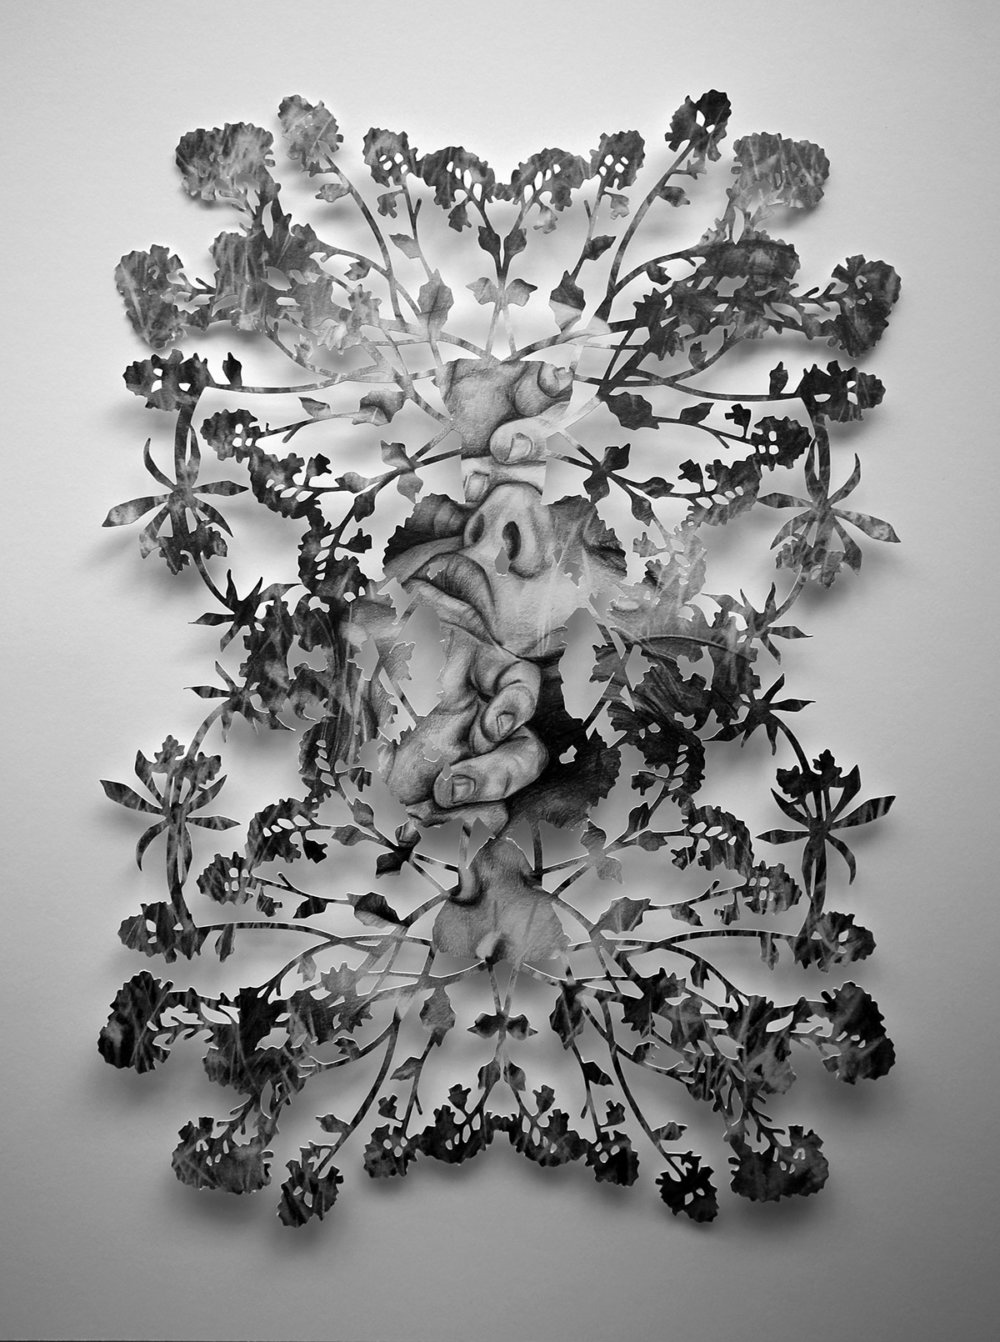 Fragmented Feelings Illustrated Papercut Works By Christine Kim 10